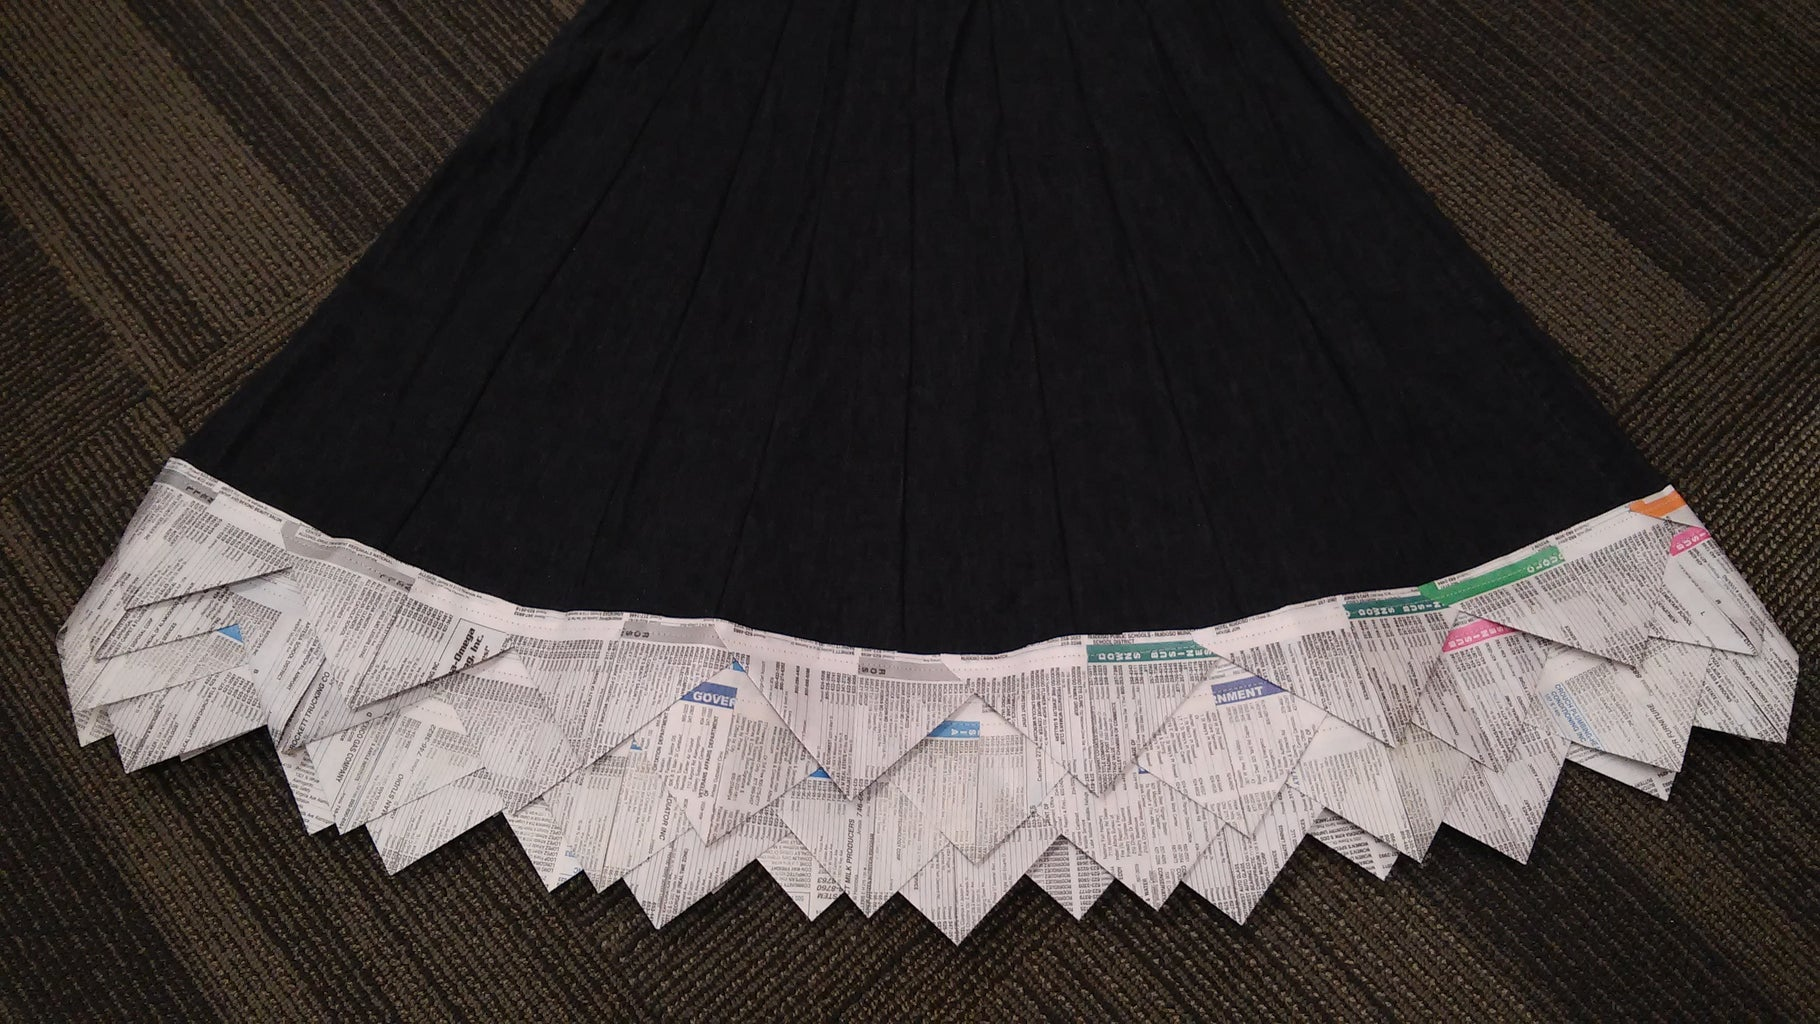 Sewing Paper Onto Skirt